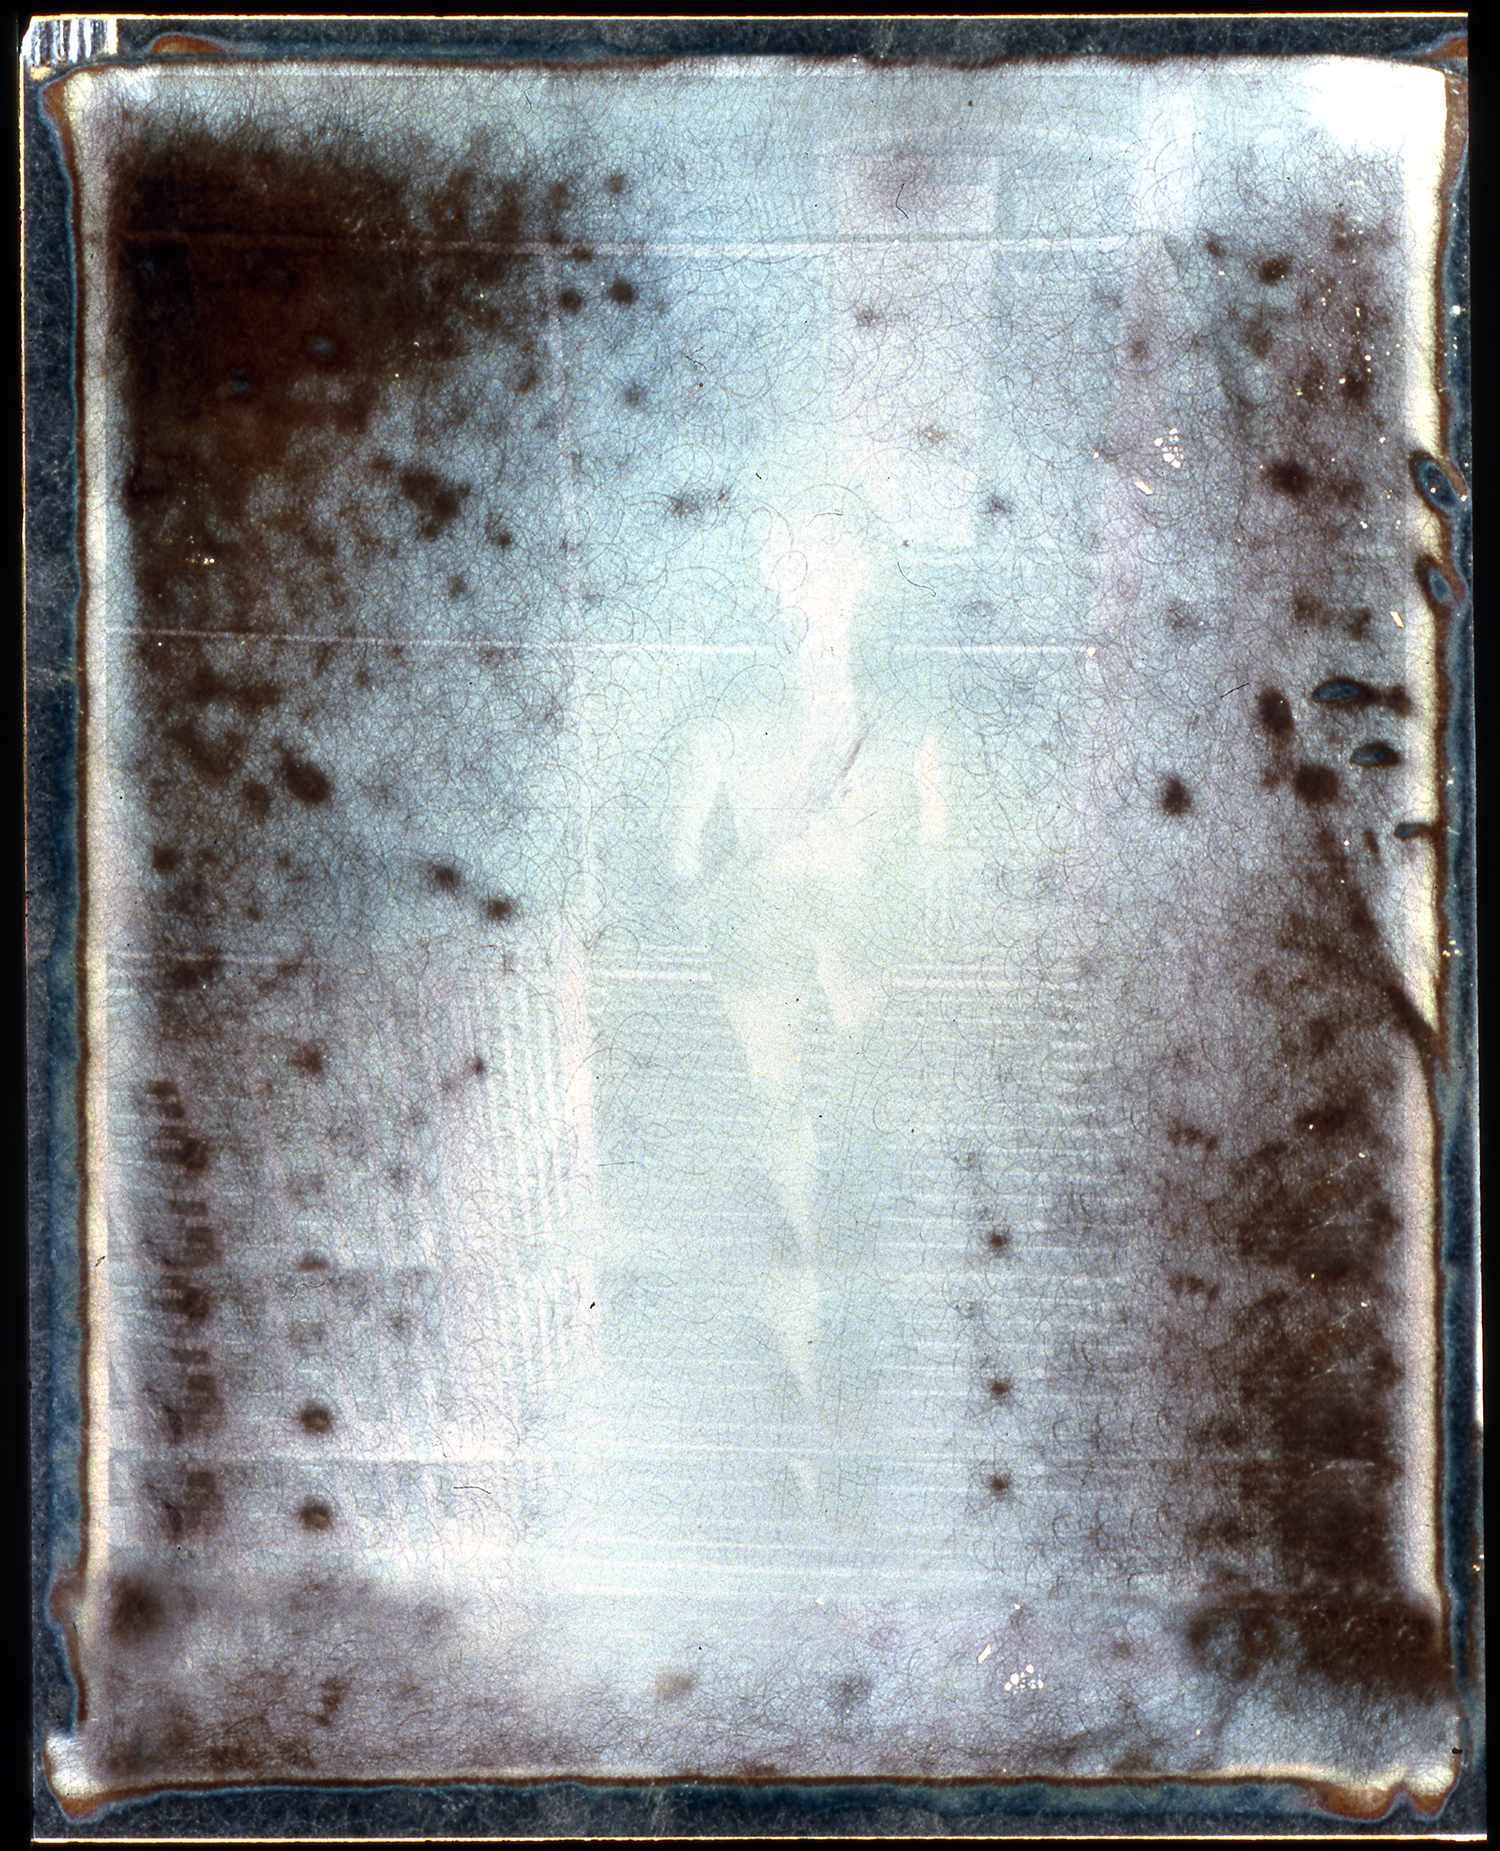 1977  Polaroid SX70 Negative, 4x3.5""